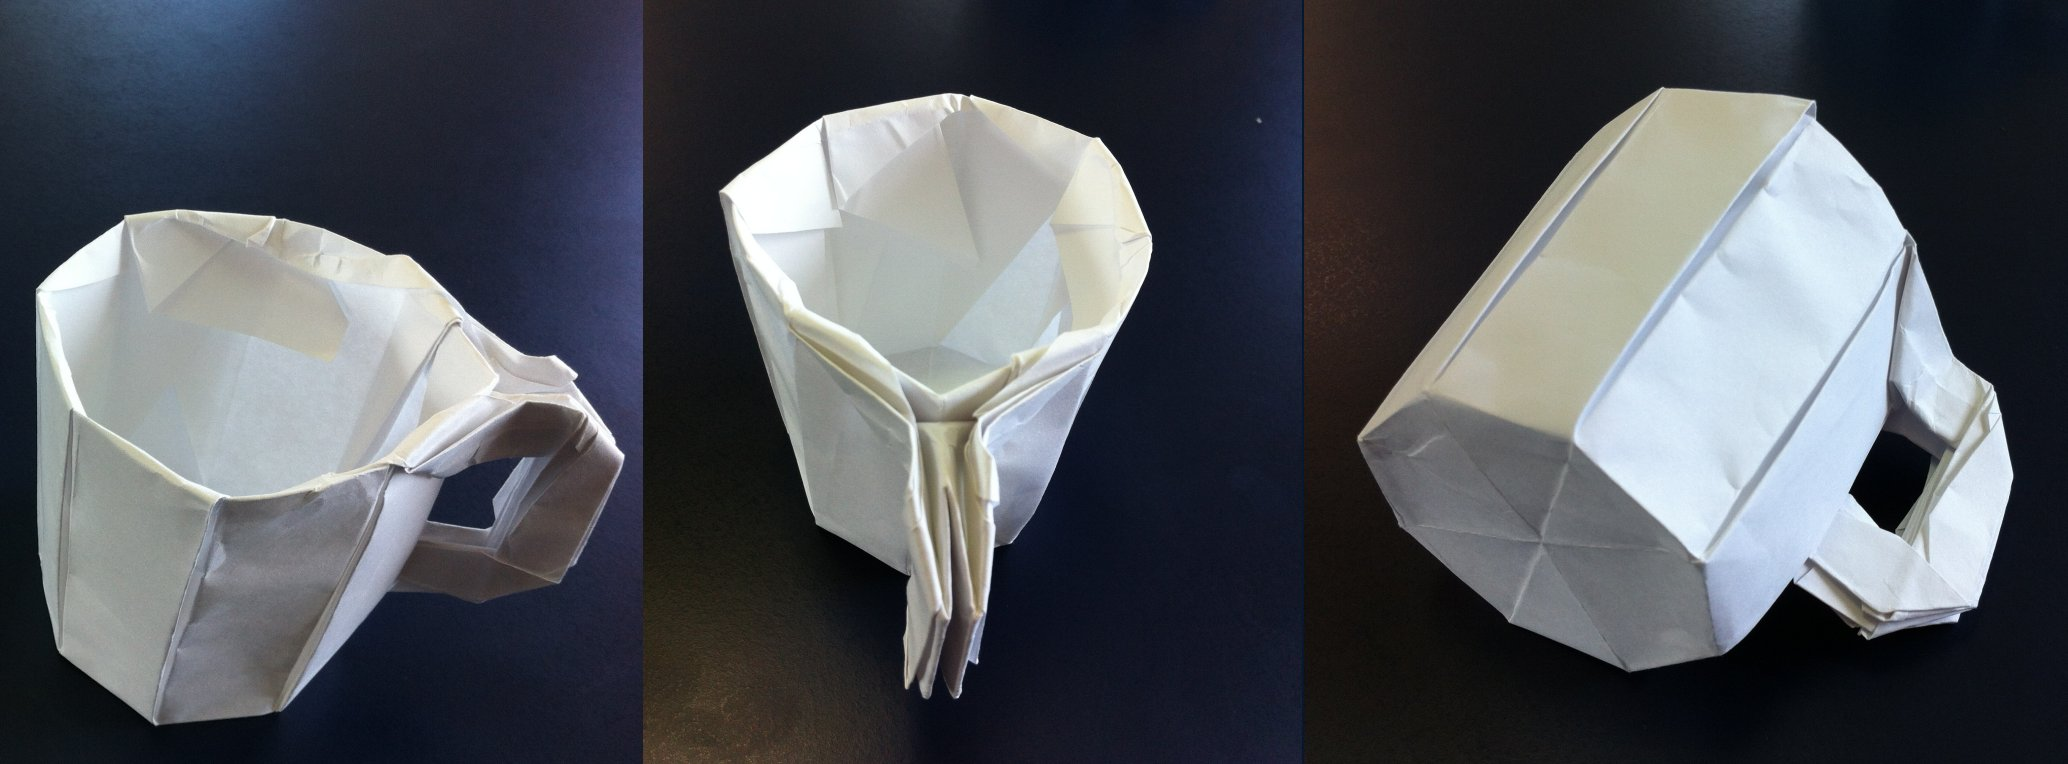 Origami How To Make A Teacup Youtube 385 Beer Mugteacup Setting The Crease